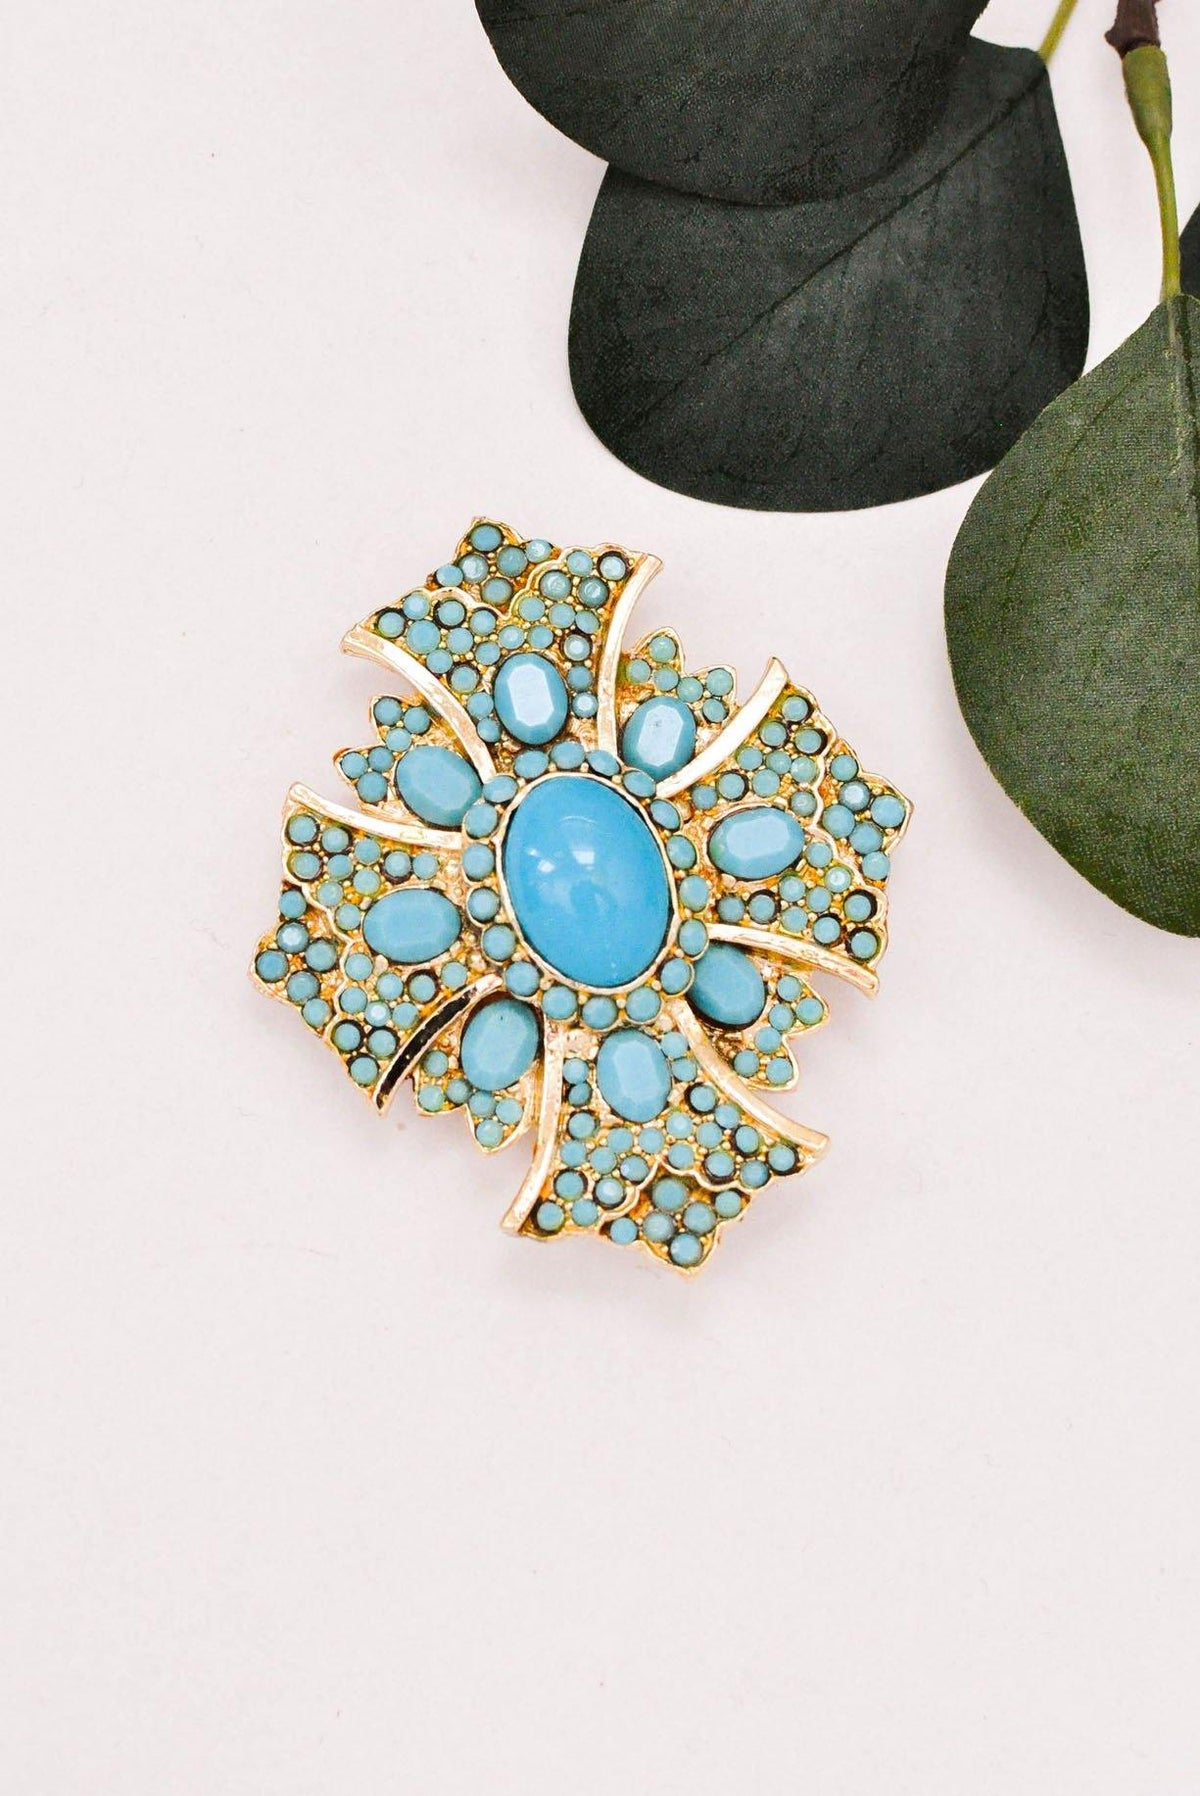 Large Turquoise Cross Statement Brooch